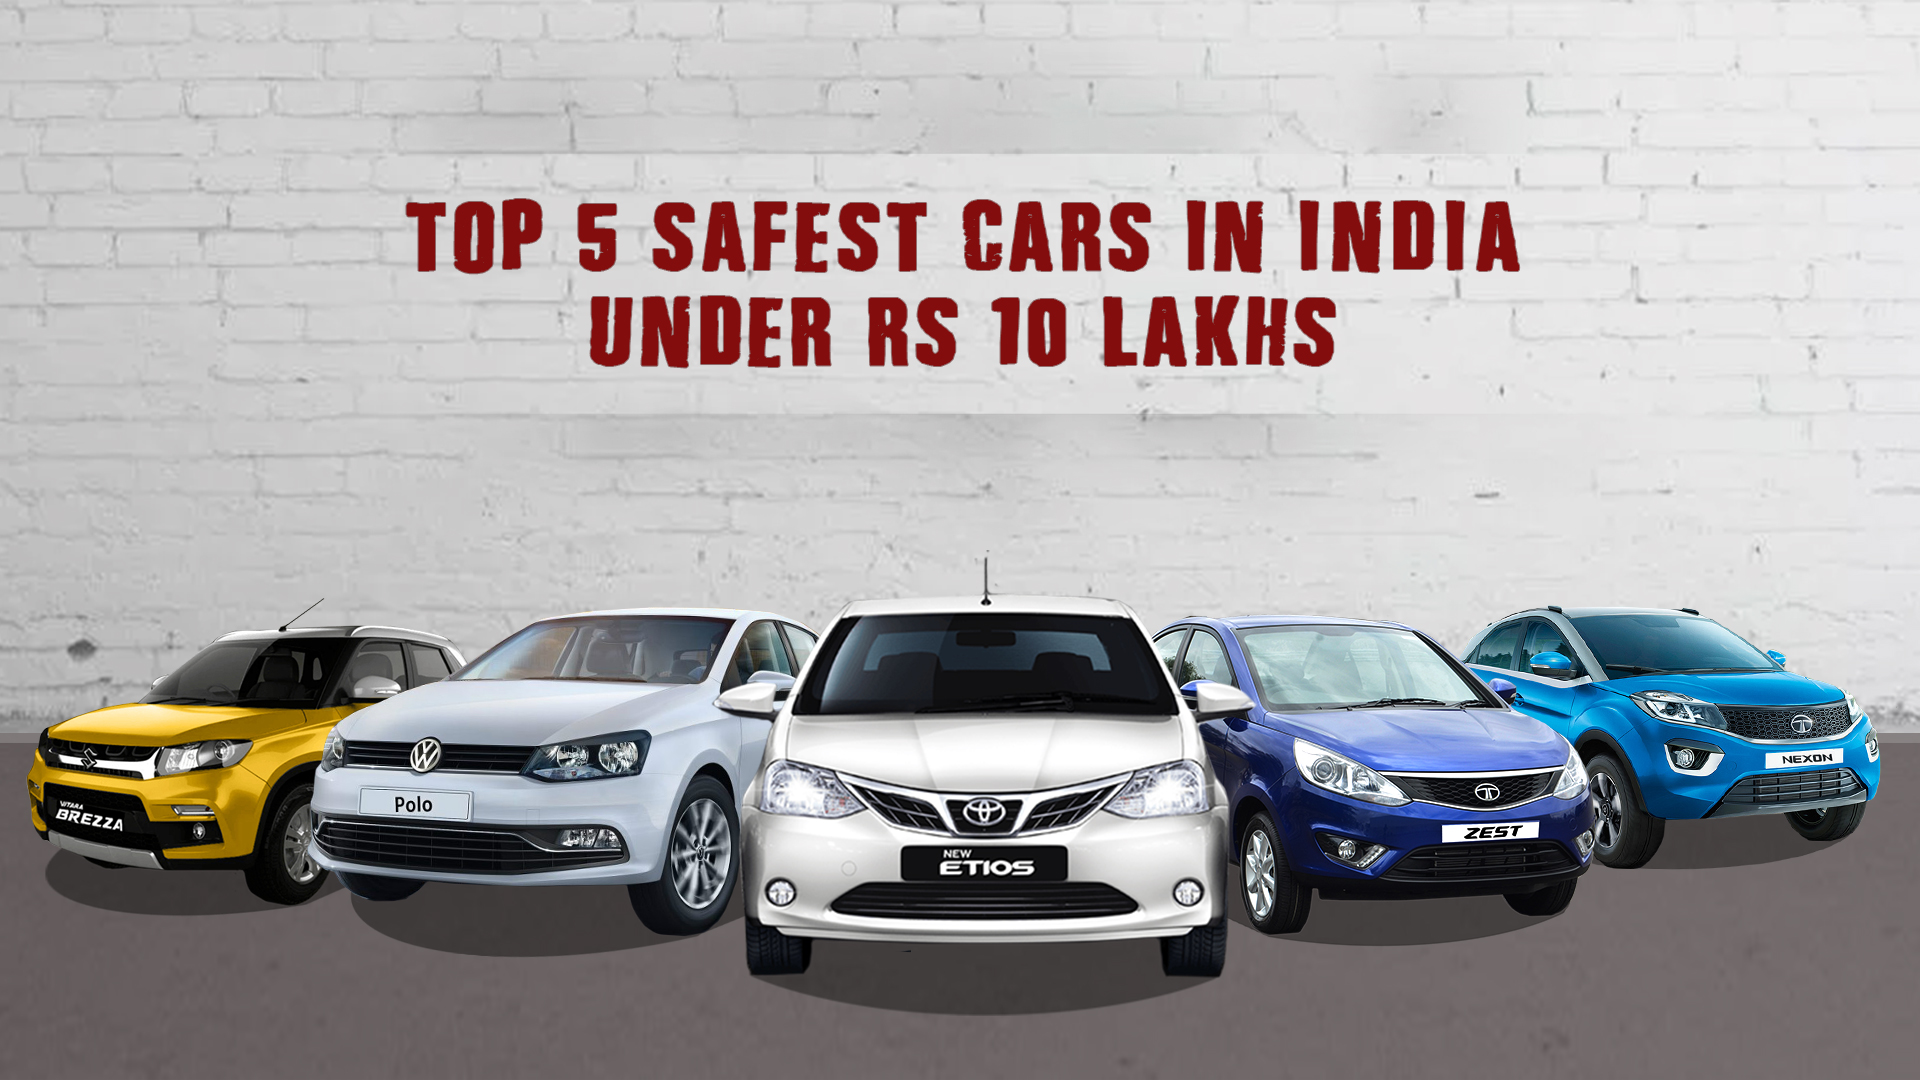 Top 5 Safest Cars Under Rs 10 Lakhs In India